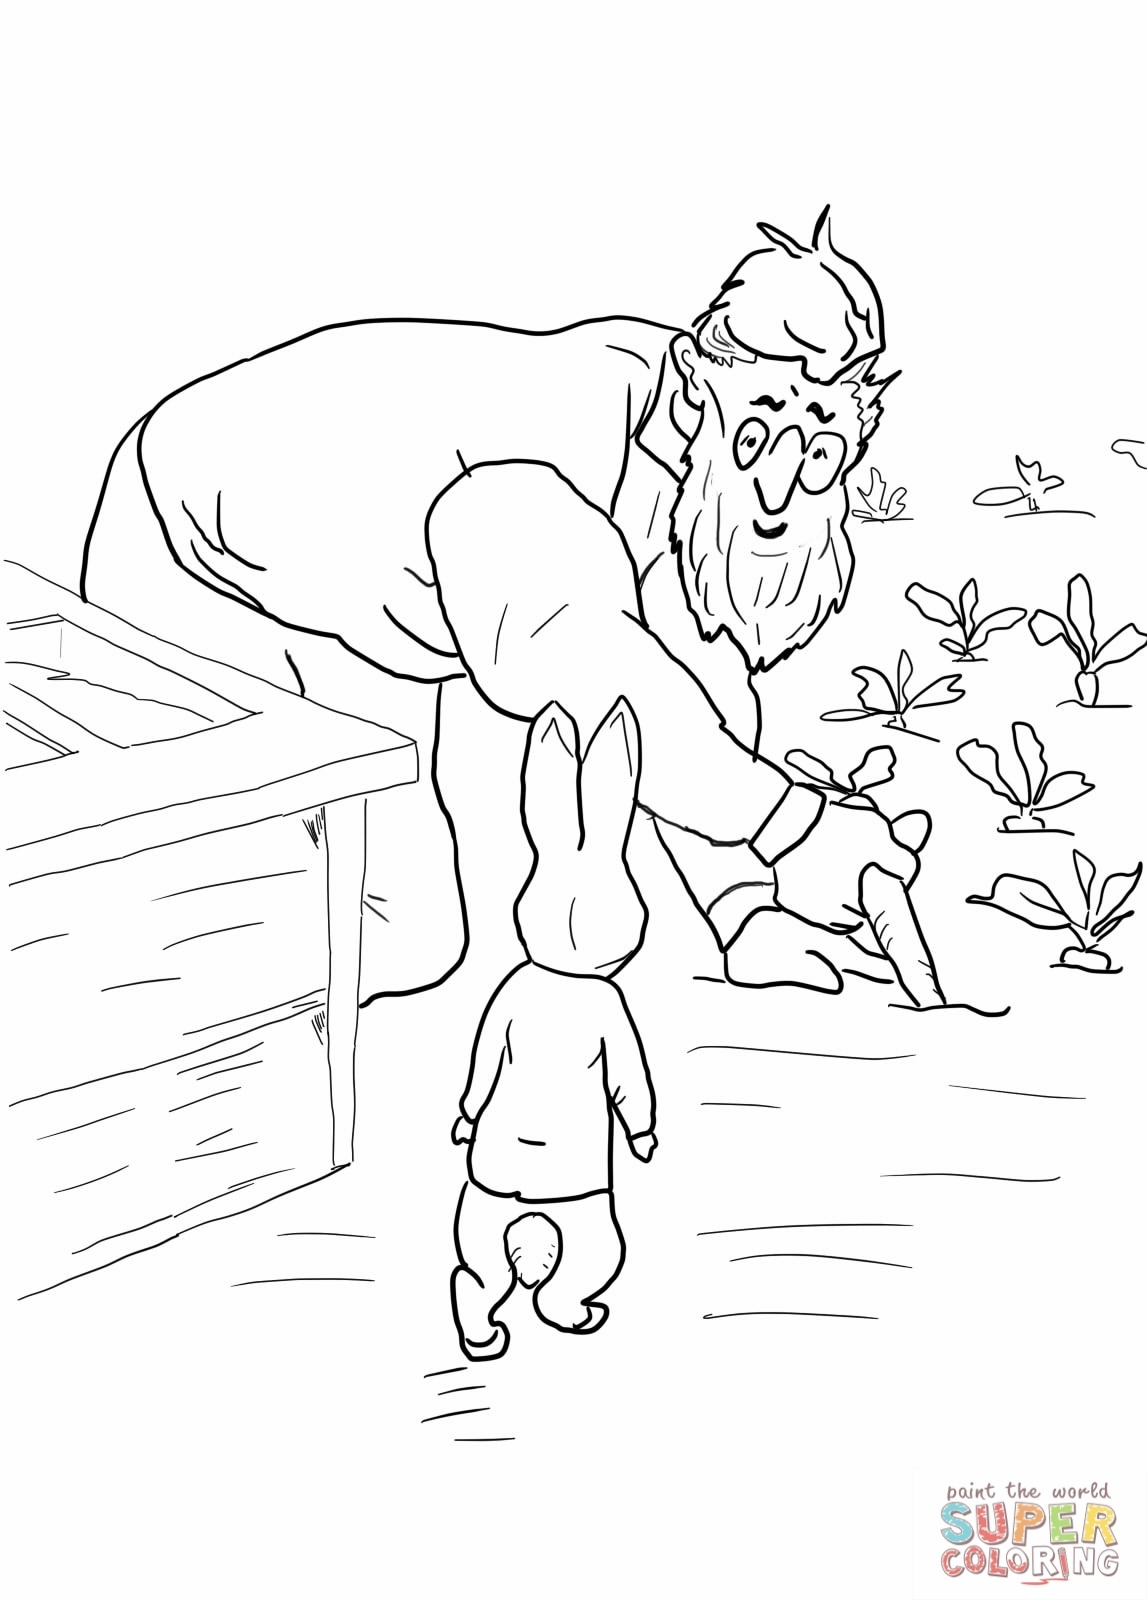 Peter Rabbit Coloring Pages - Coloring Pages For Kids - Free Printable Peter Rabbit Coloring Pages